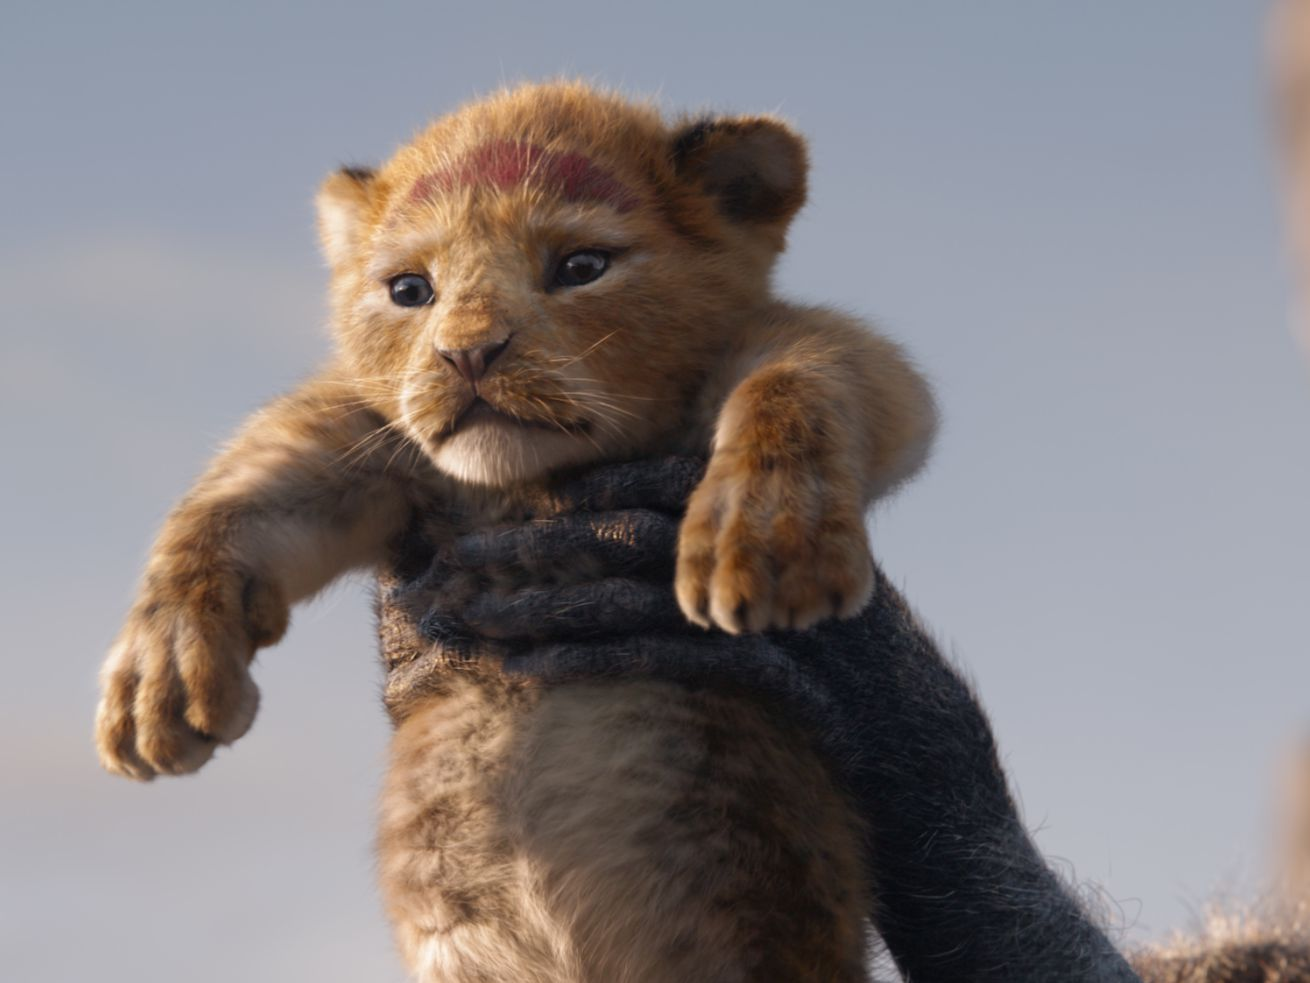 Disney's Lion King remake is just like the original, but without the magic - The Reports